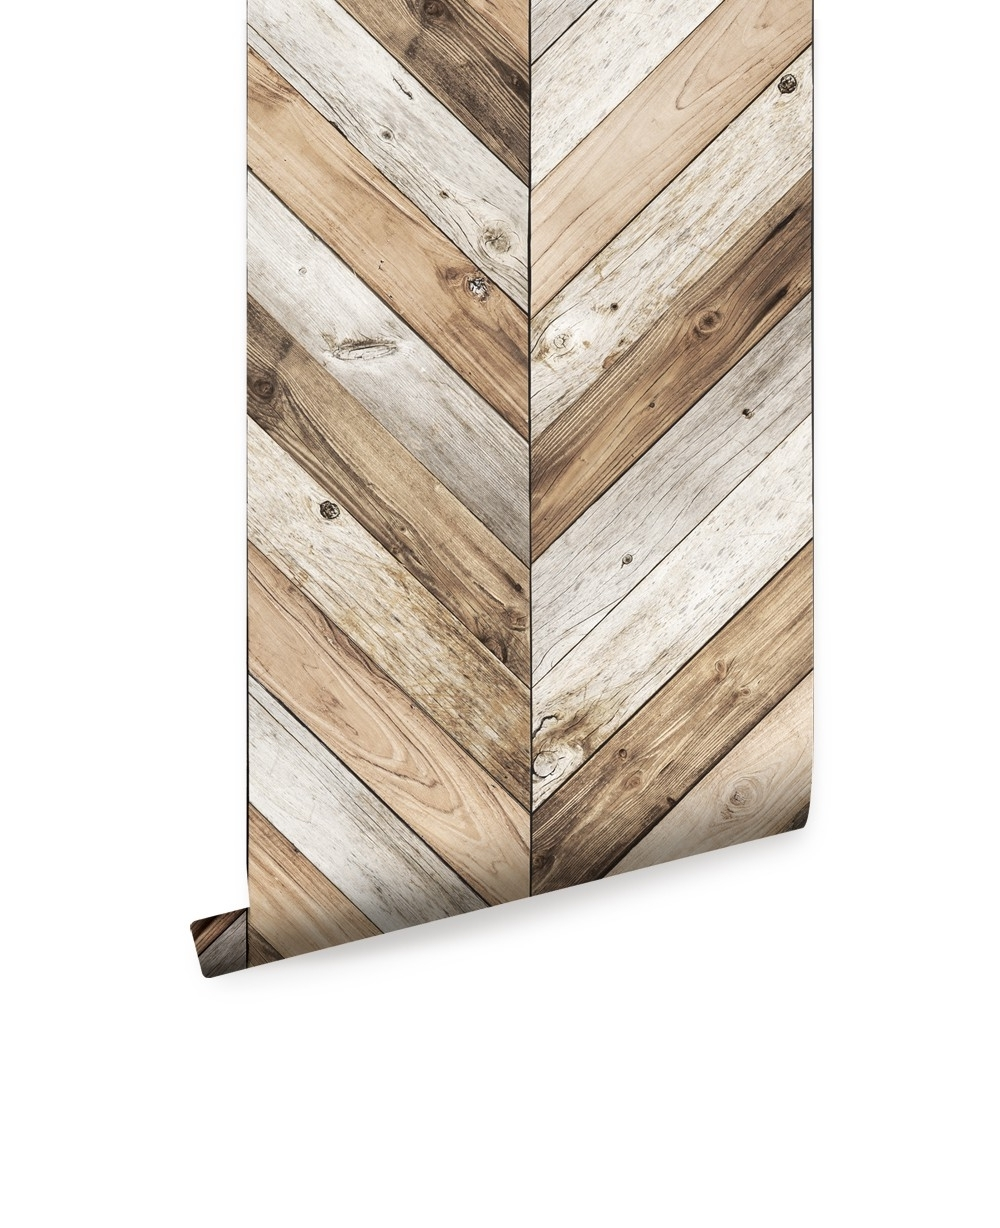 2018 Chevron Wall Art With Chevron Wood Herringbone Wallpaper – Peel And Stick, Chevron Wall (View 1 of 20)